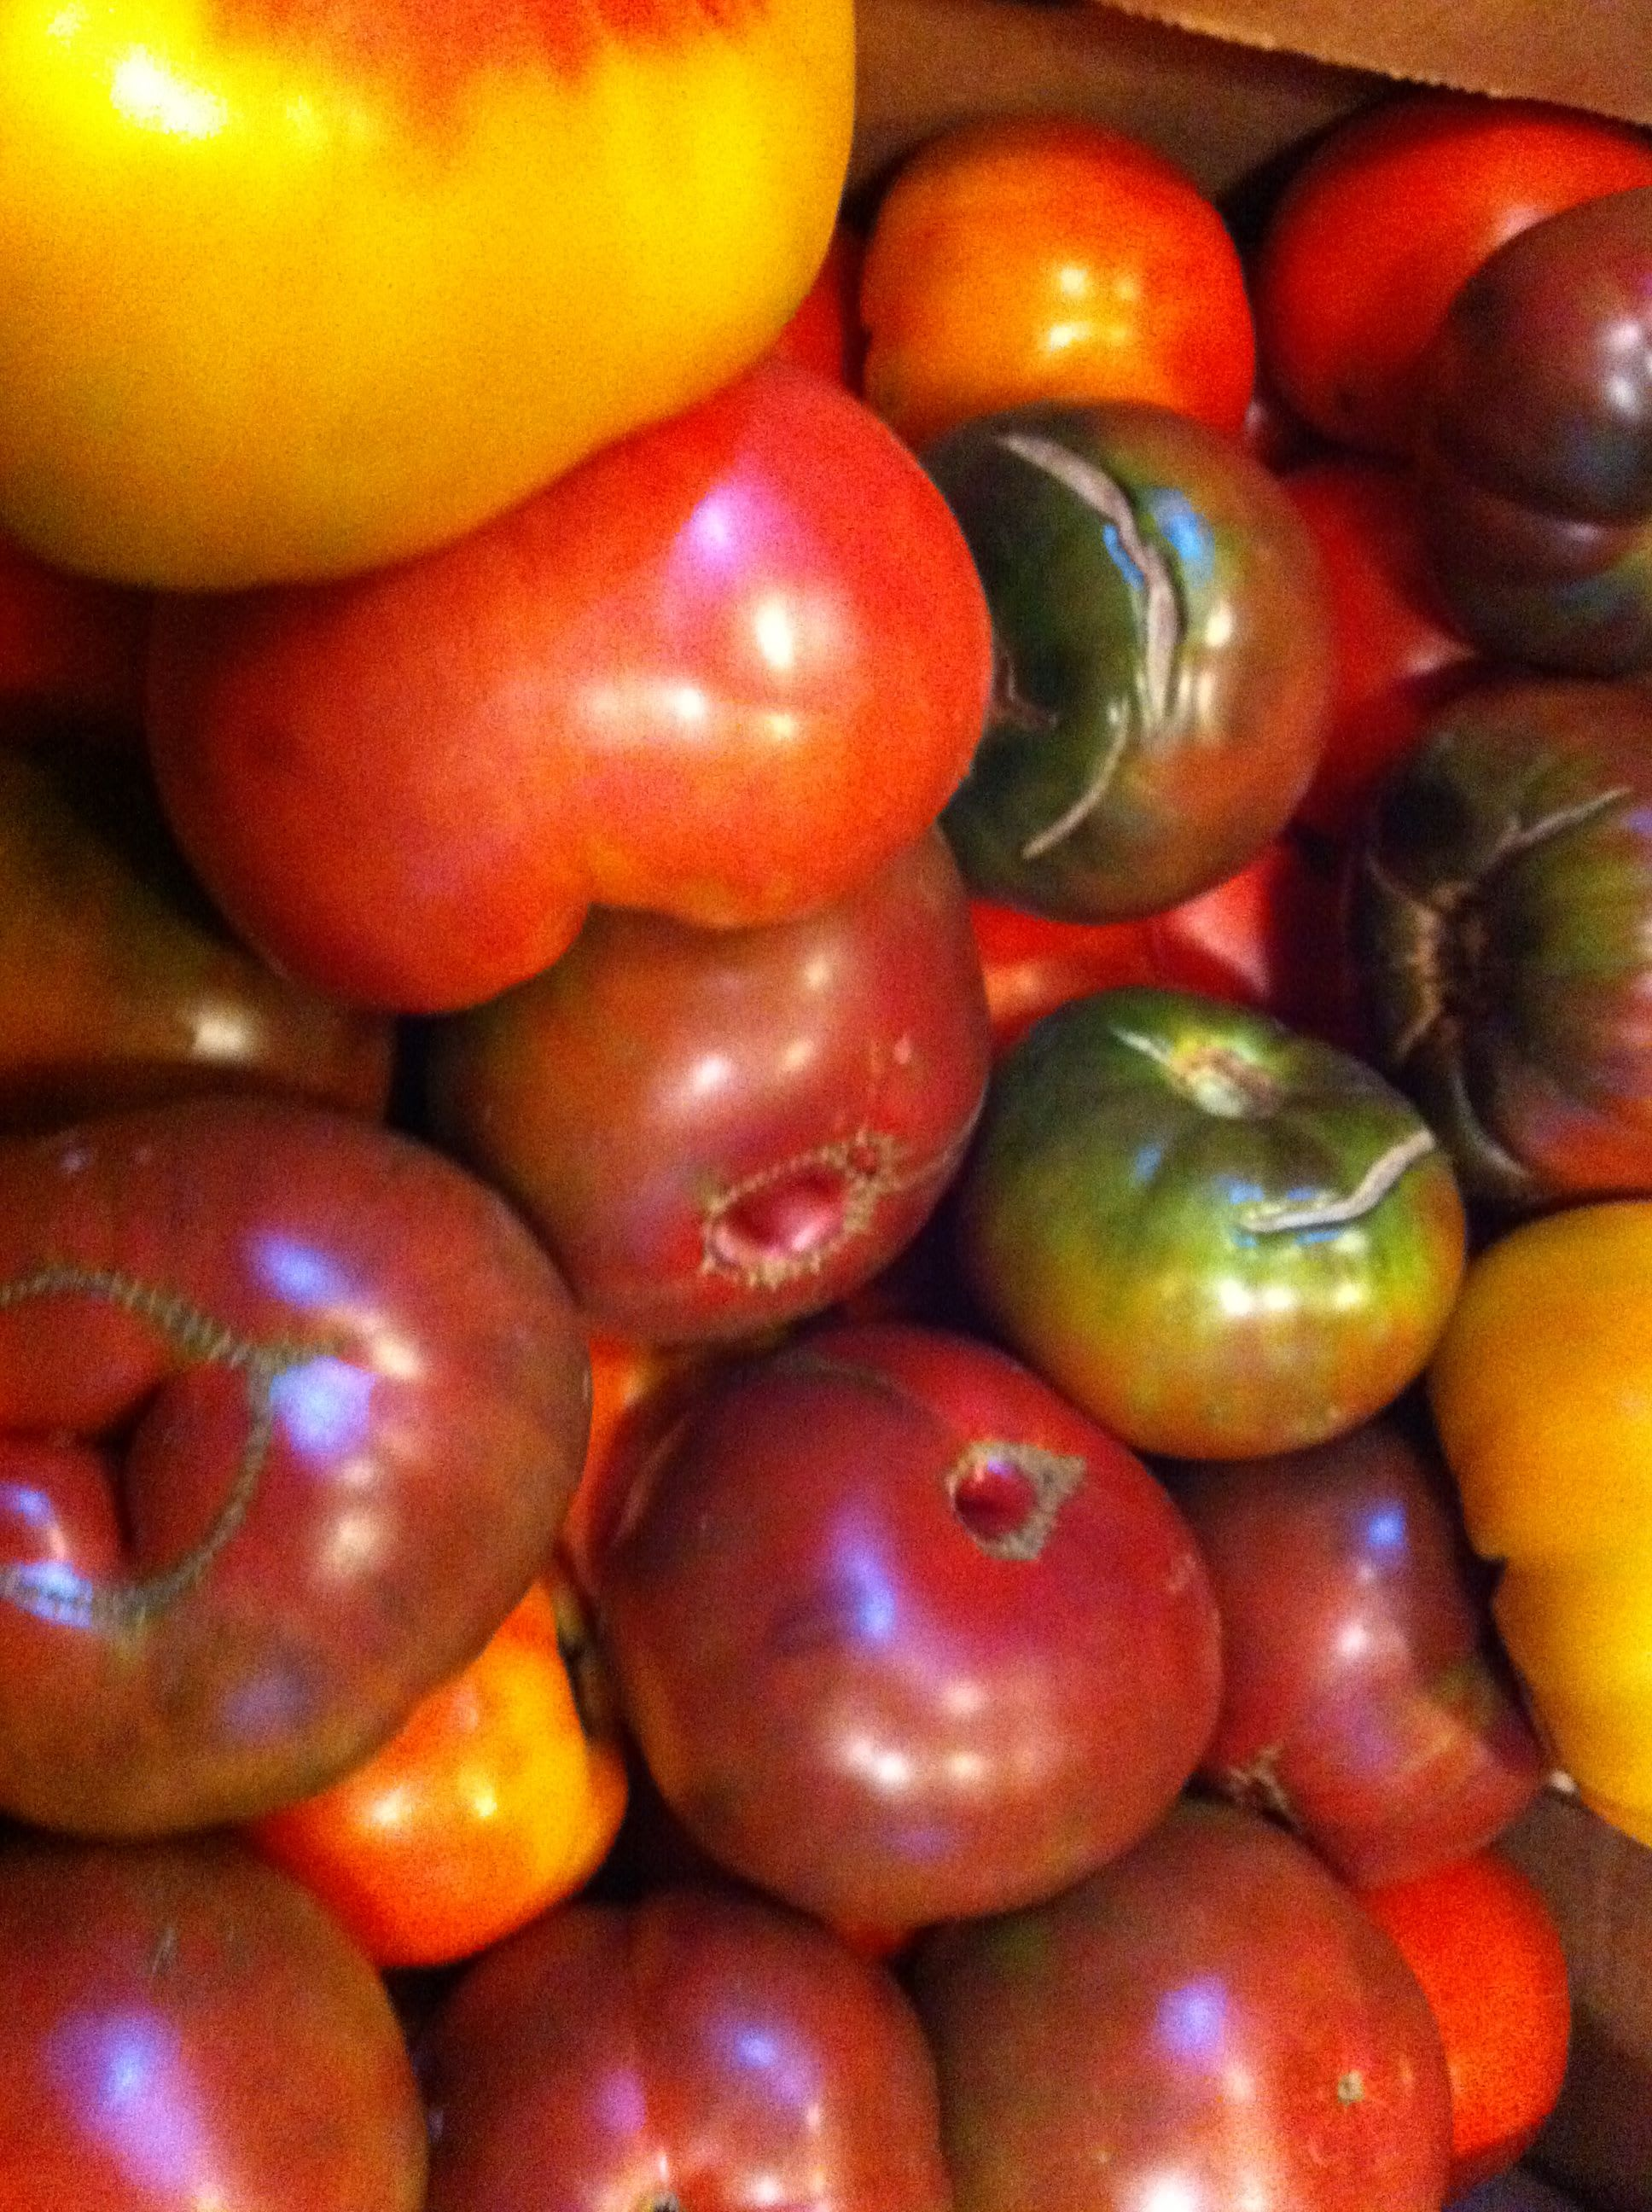 Heirloom tomatoes at Taberna de Haro